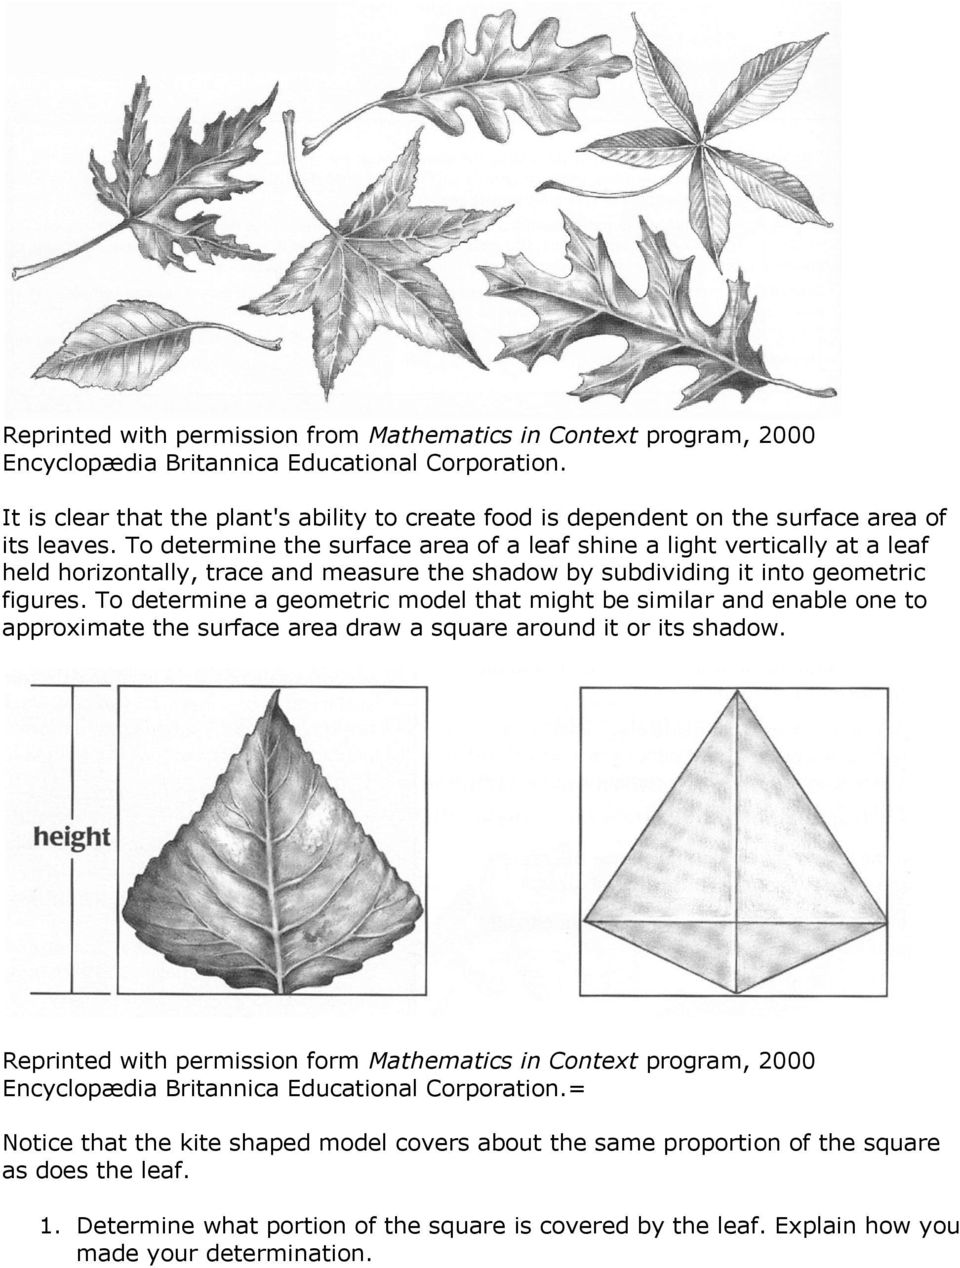 To determine the surface area of a leaf shine a light vertically at a leaf held horizontally, trace and measure the shadow by subdividing it into geometric figures.